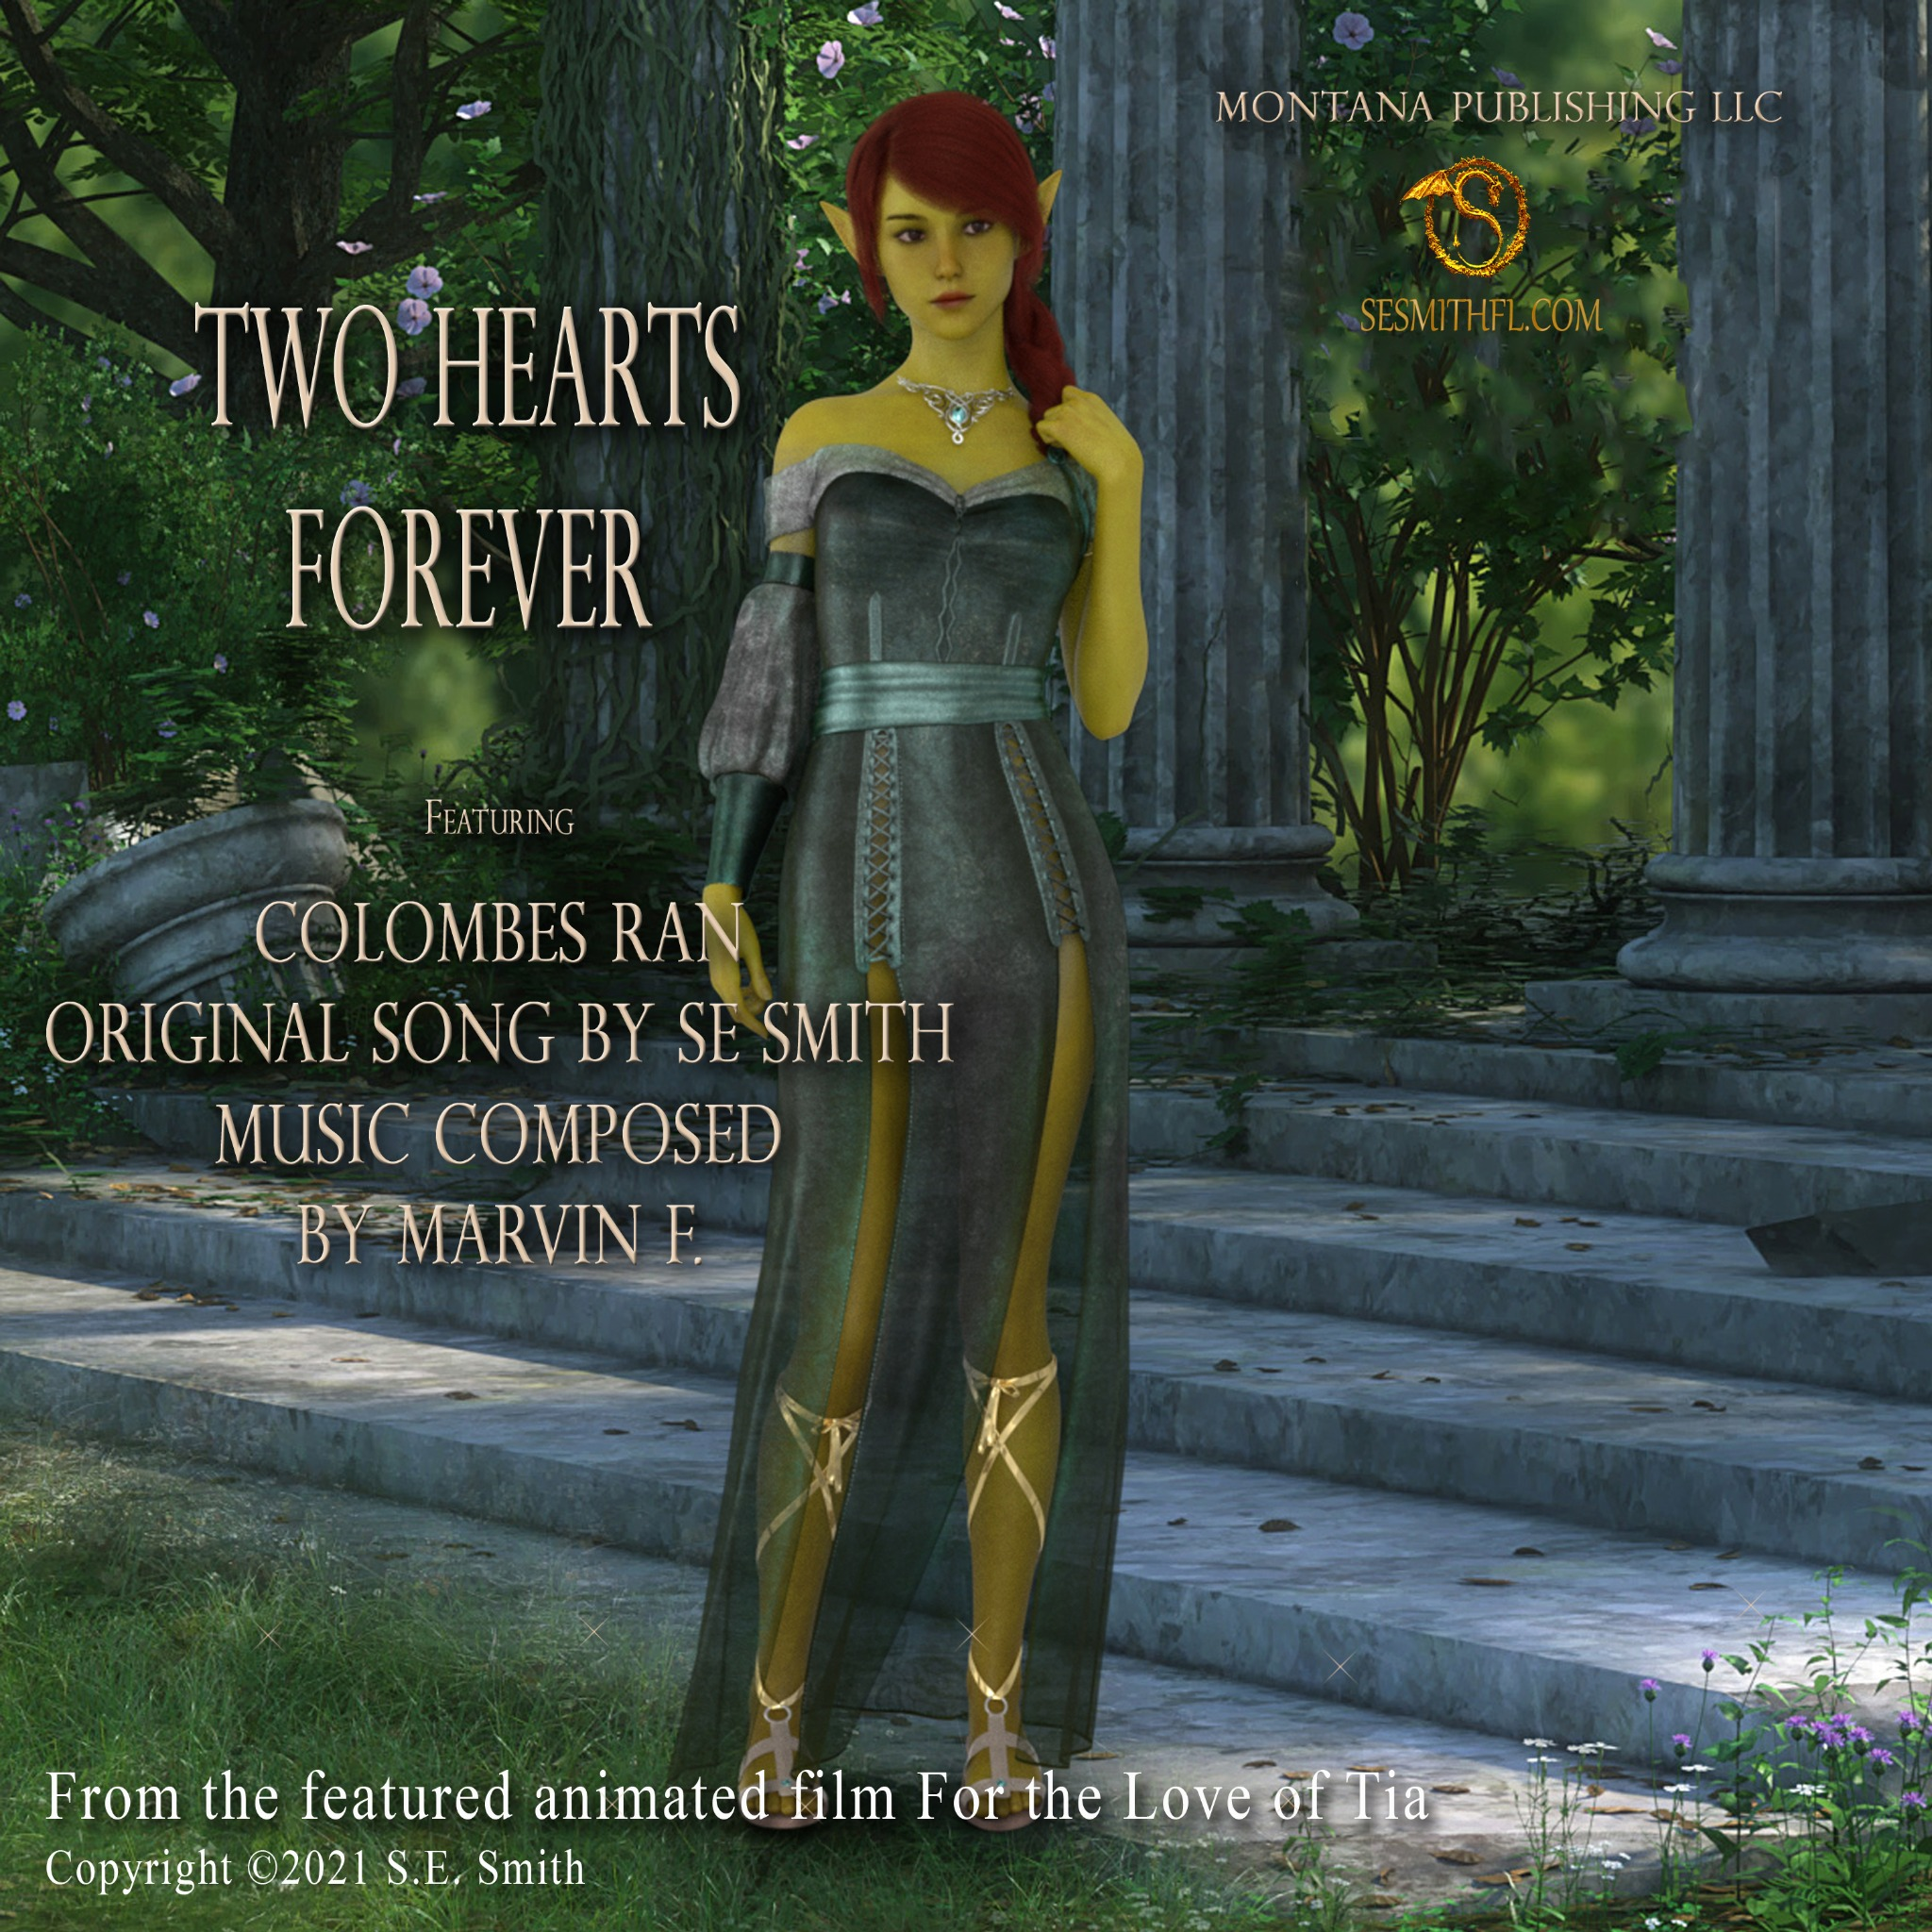 Two Hearts Forever featuring ColombeS Ran; lyrics by SE Smith; Melody by Marvin F.